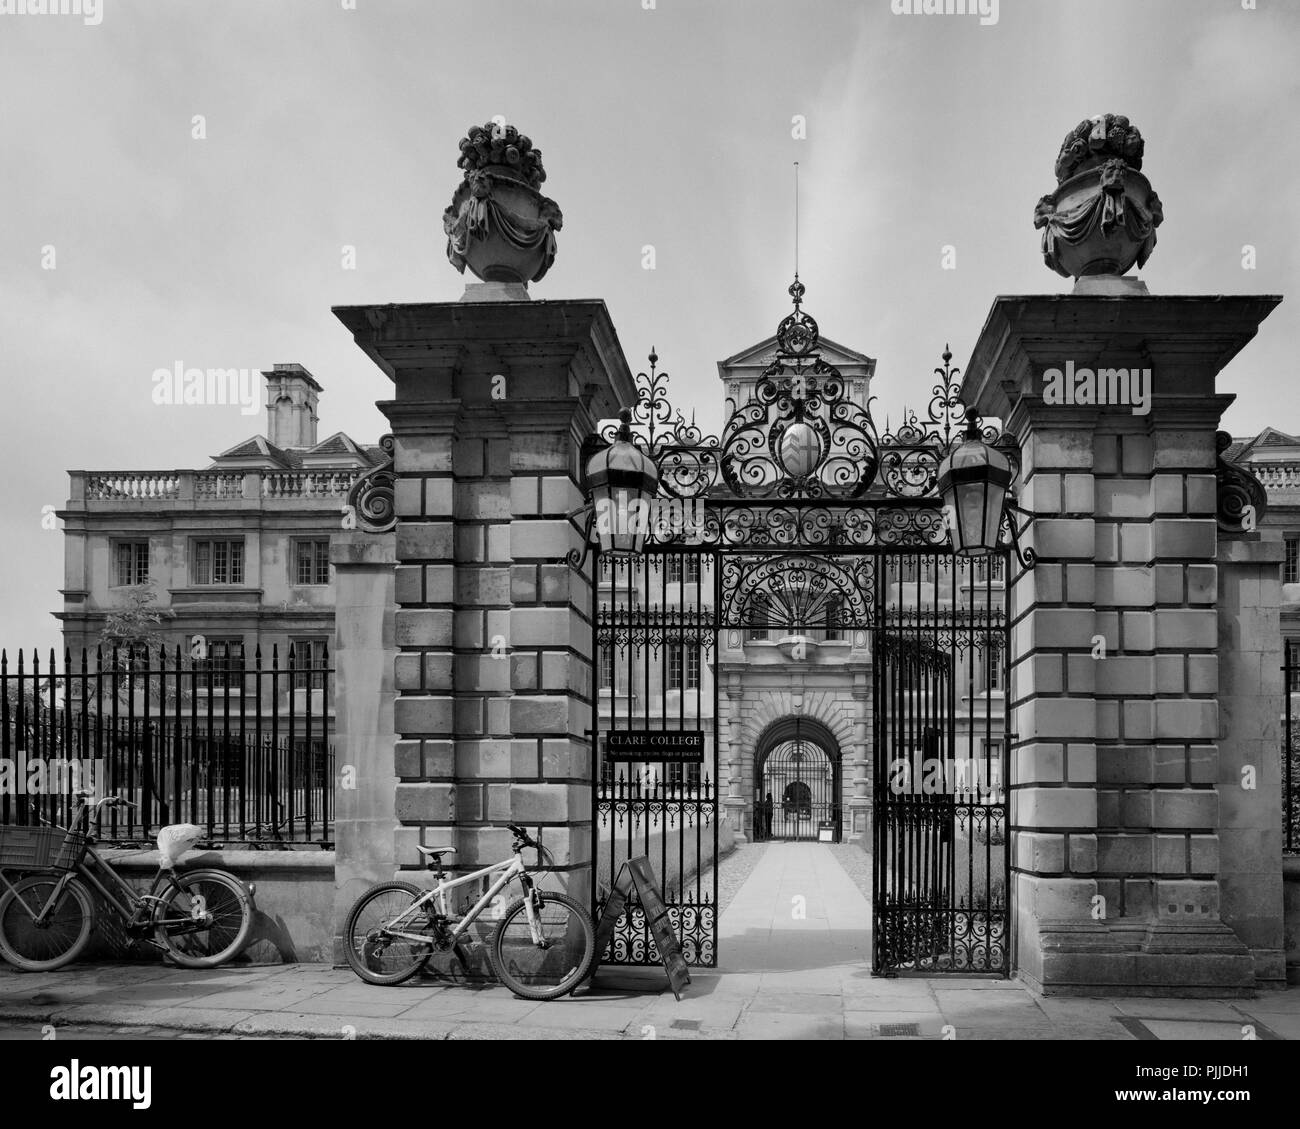 Trinity Lane entrance to Clare College Cambridge - Stock Image